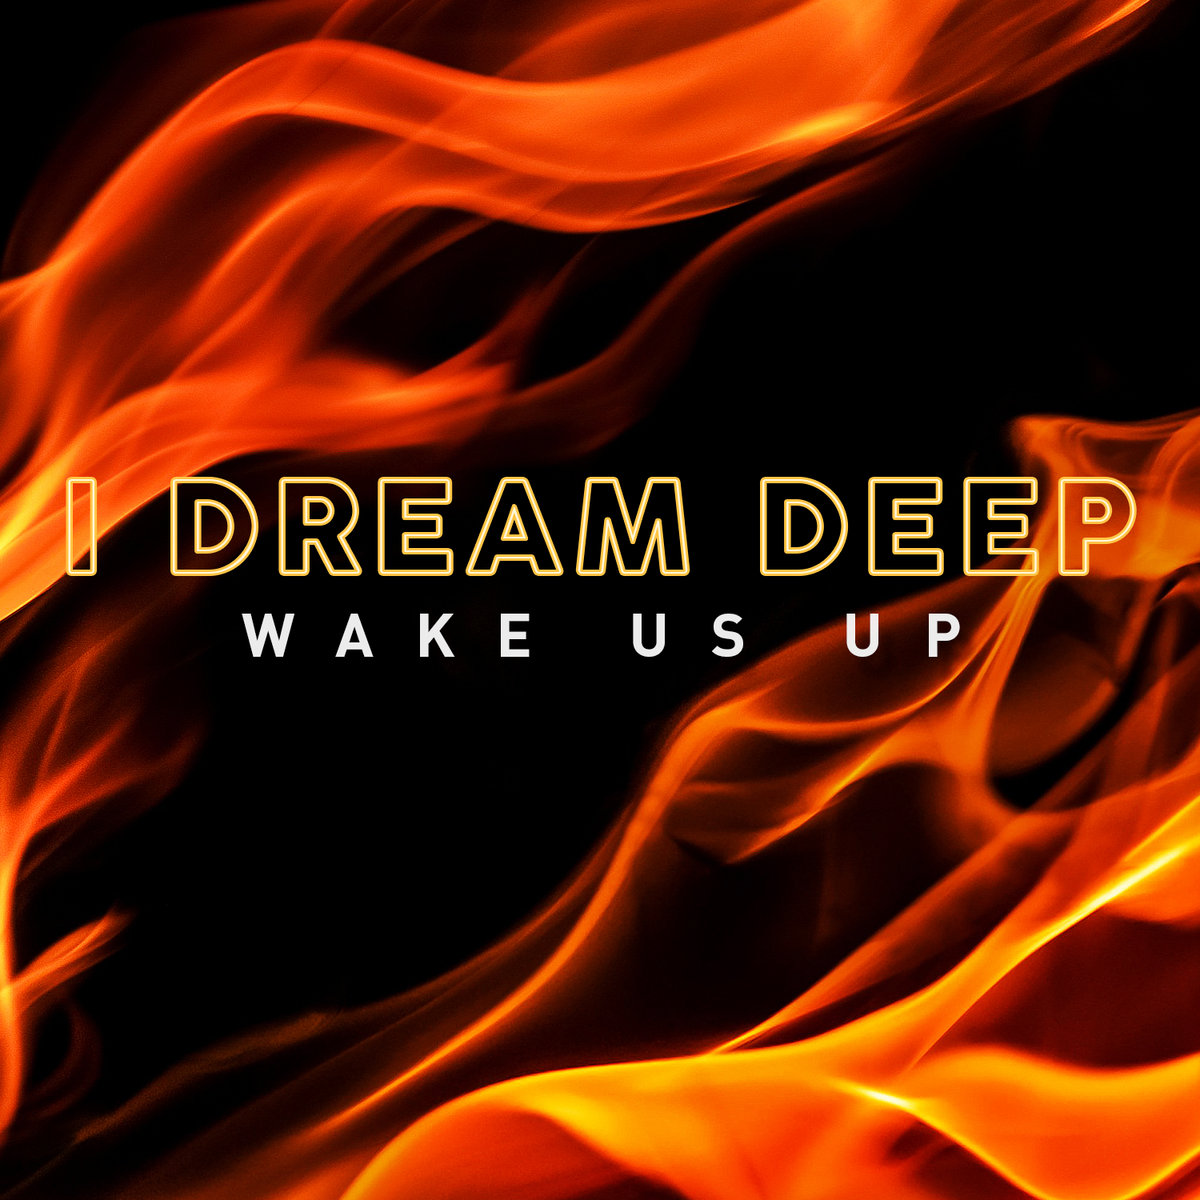 Wake Us Up by I Dream Deep